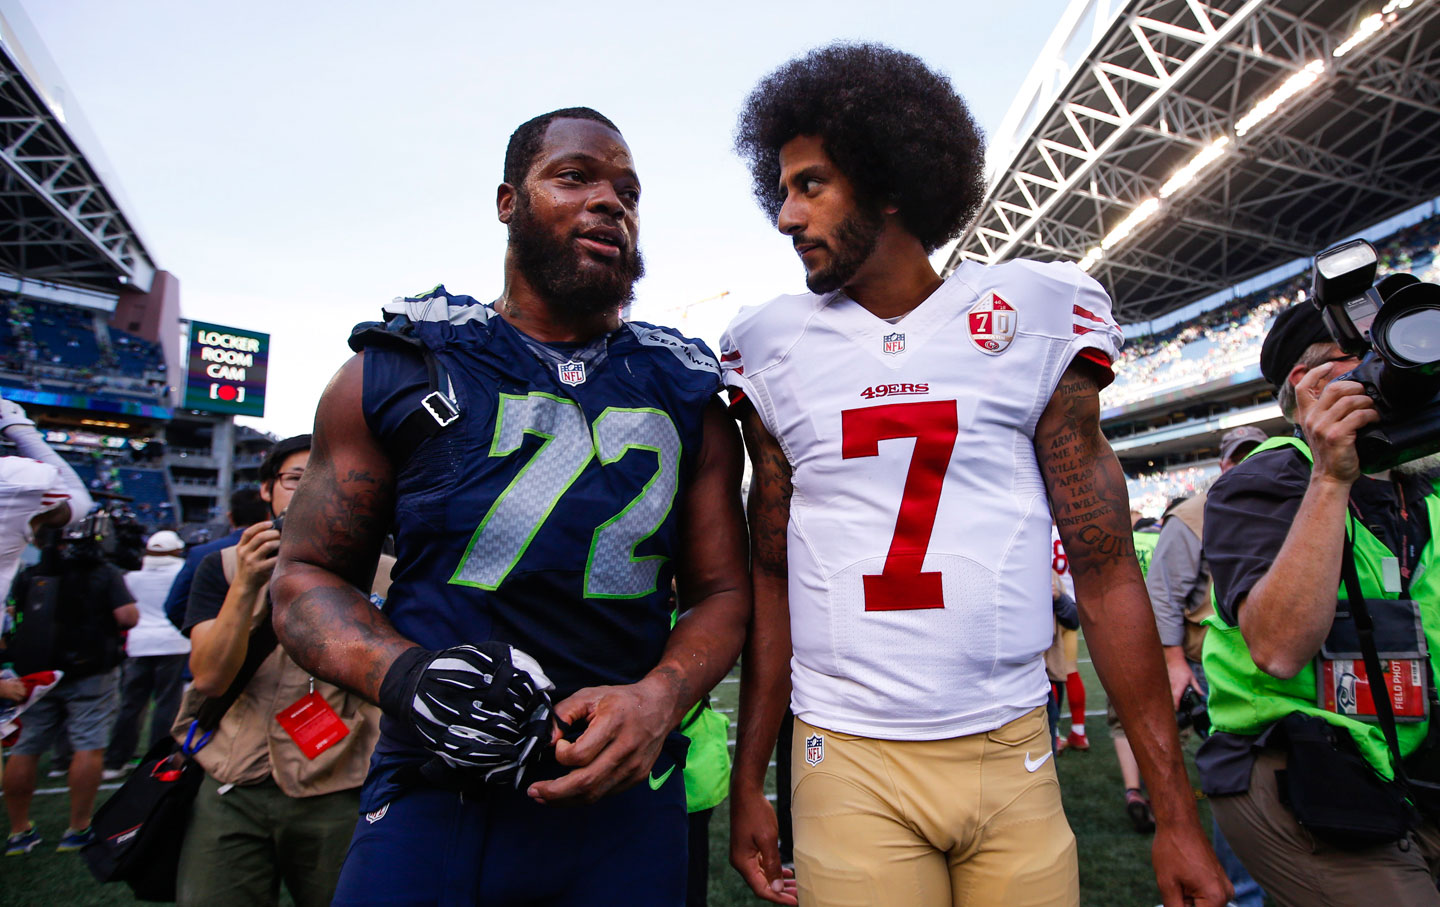 Michael Bennett and Colin Kaepernick